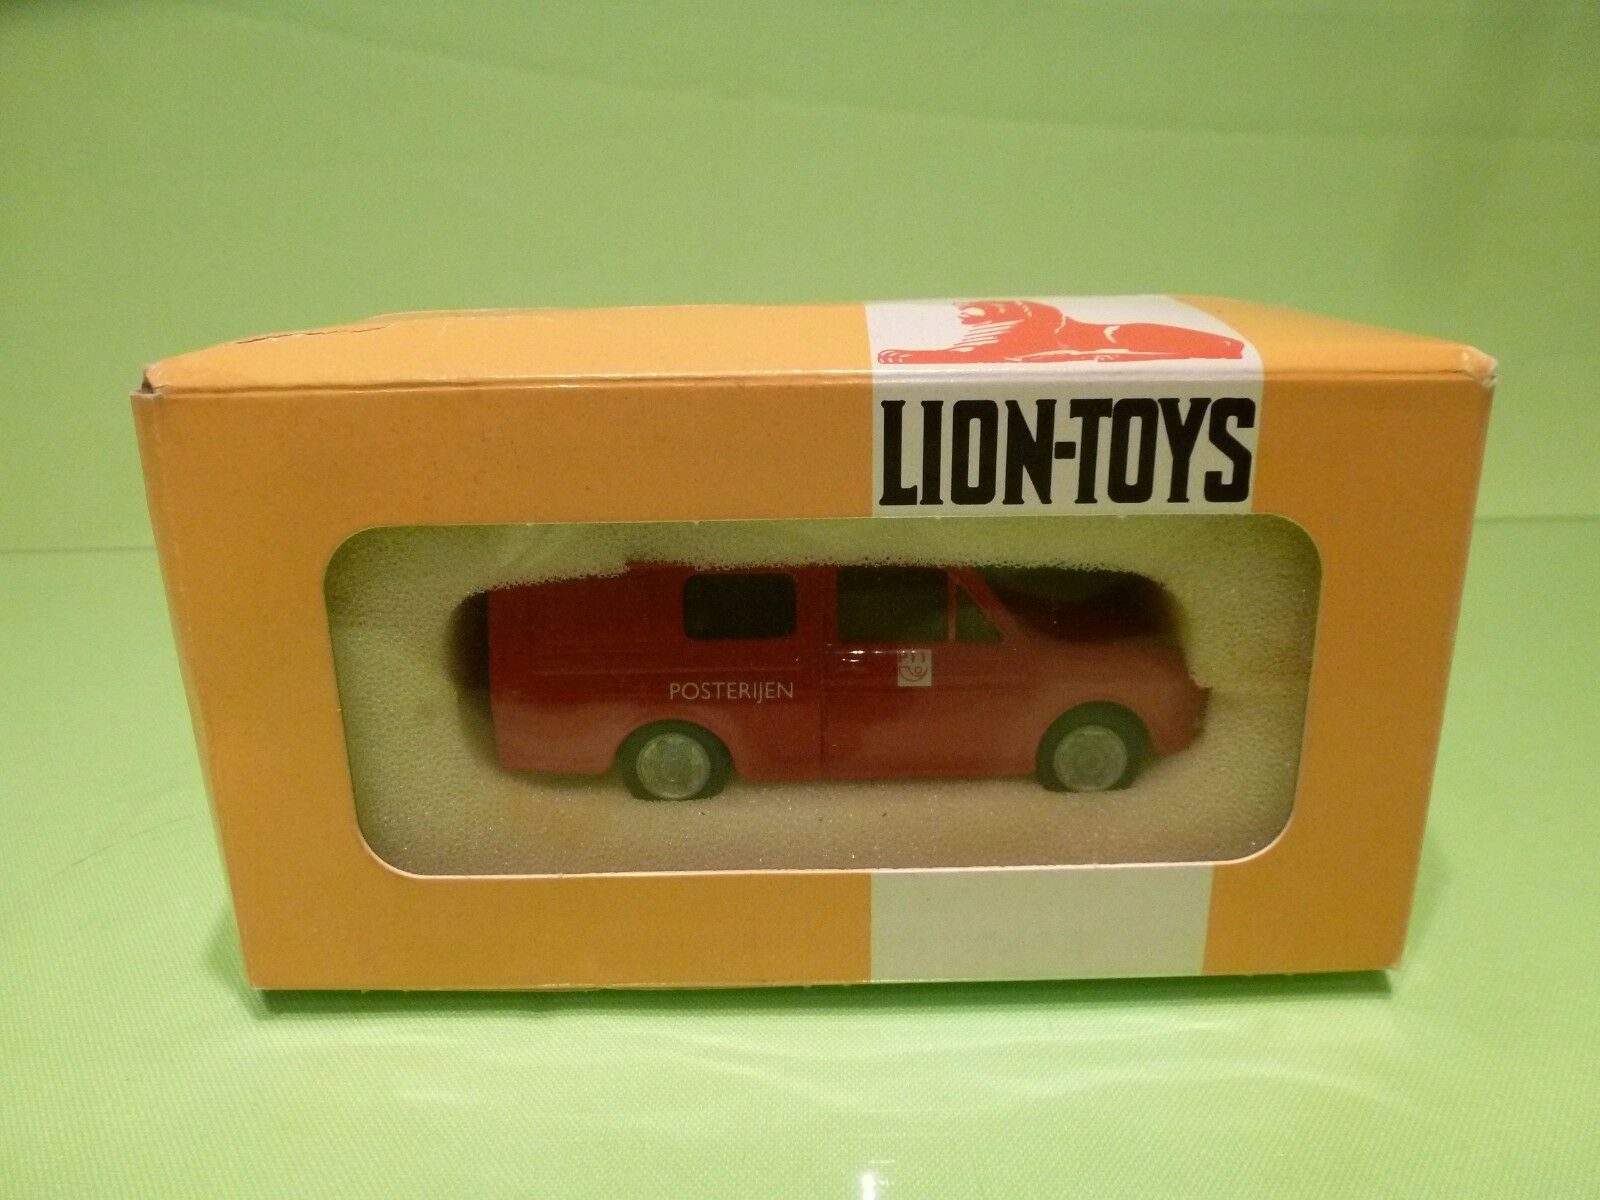 LION Coche DAF 33 COMBI VARIOMATIC - NA 2000 - PTT POSTERIJEN - EXCELLENT IN BOX